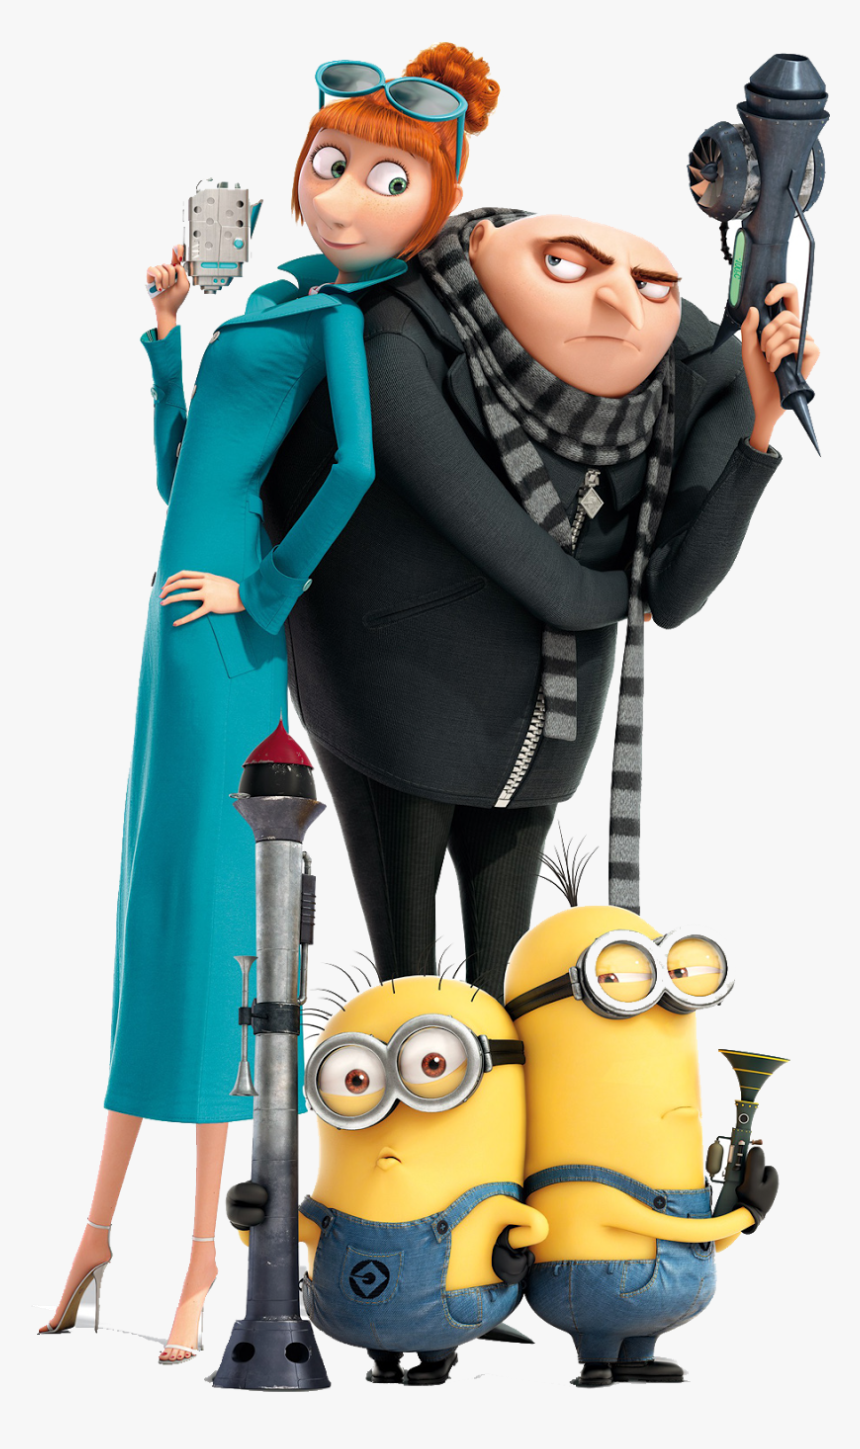 Character Transparent Despicable Me - Despicable Me 2 Png, Png Download, Free Download